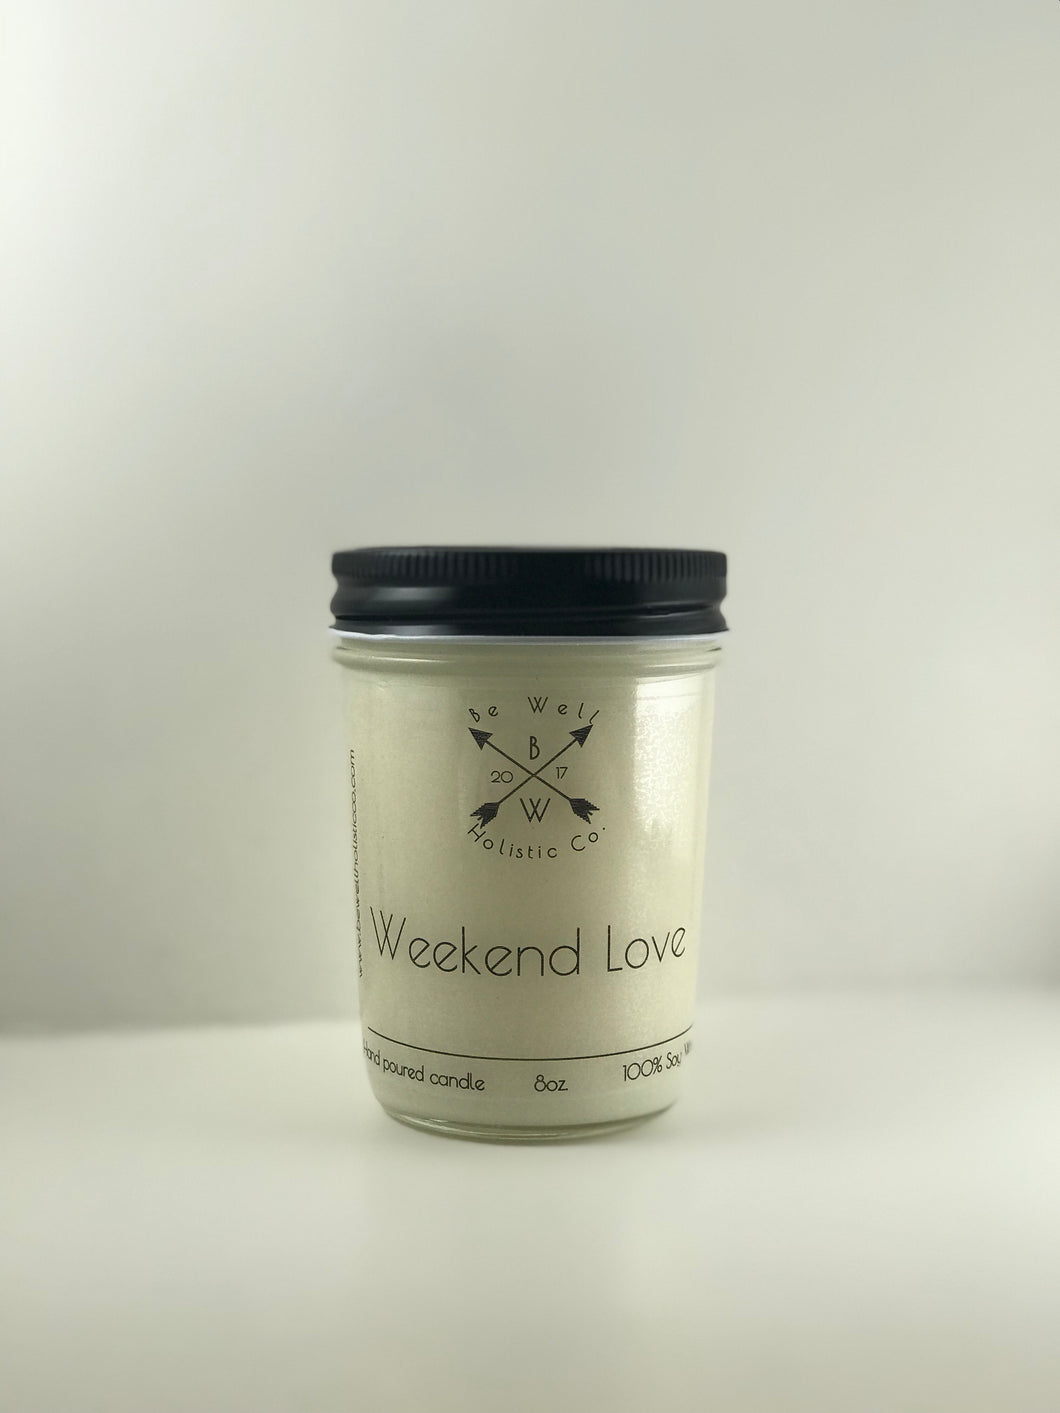 Weekend Love Soy Wax Candle